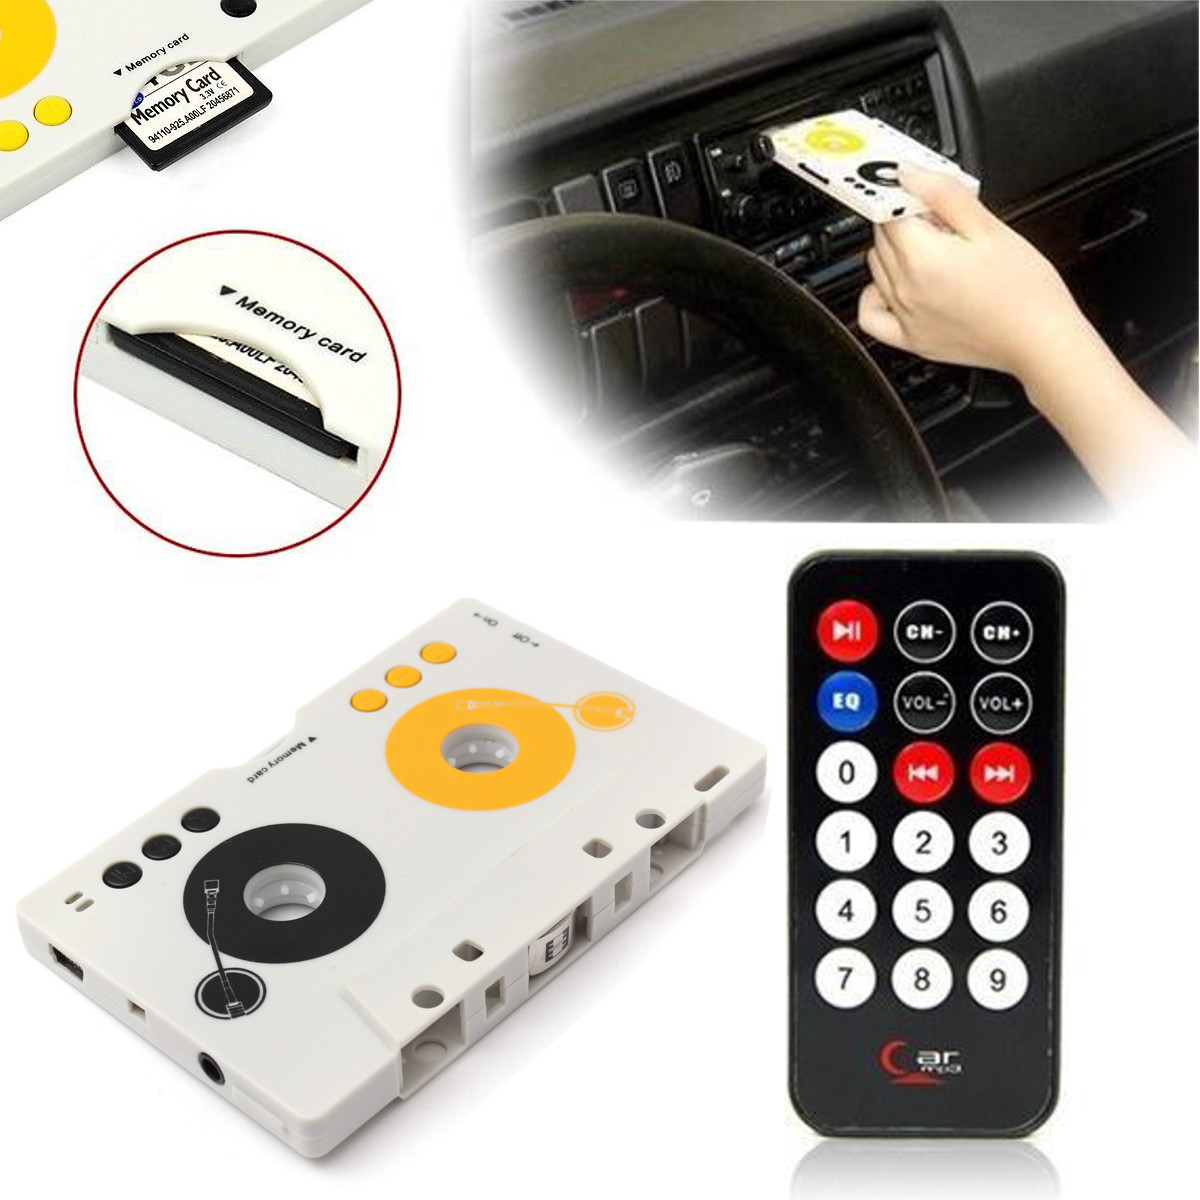 New Vintage Car Tape Cassette SDMMC MP3 Player Adapter Kit With Remote Control For Phone For